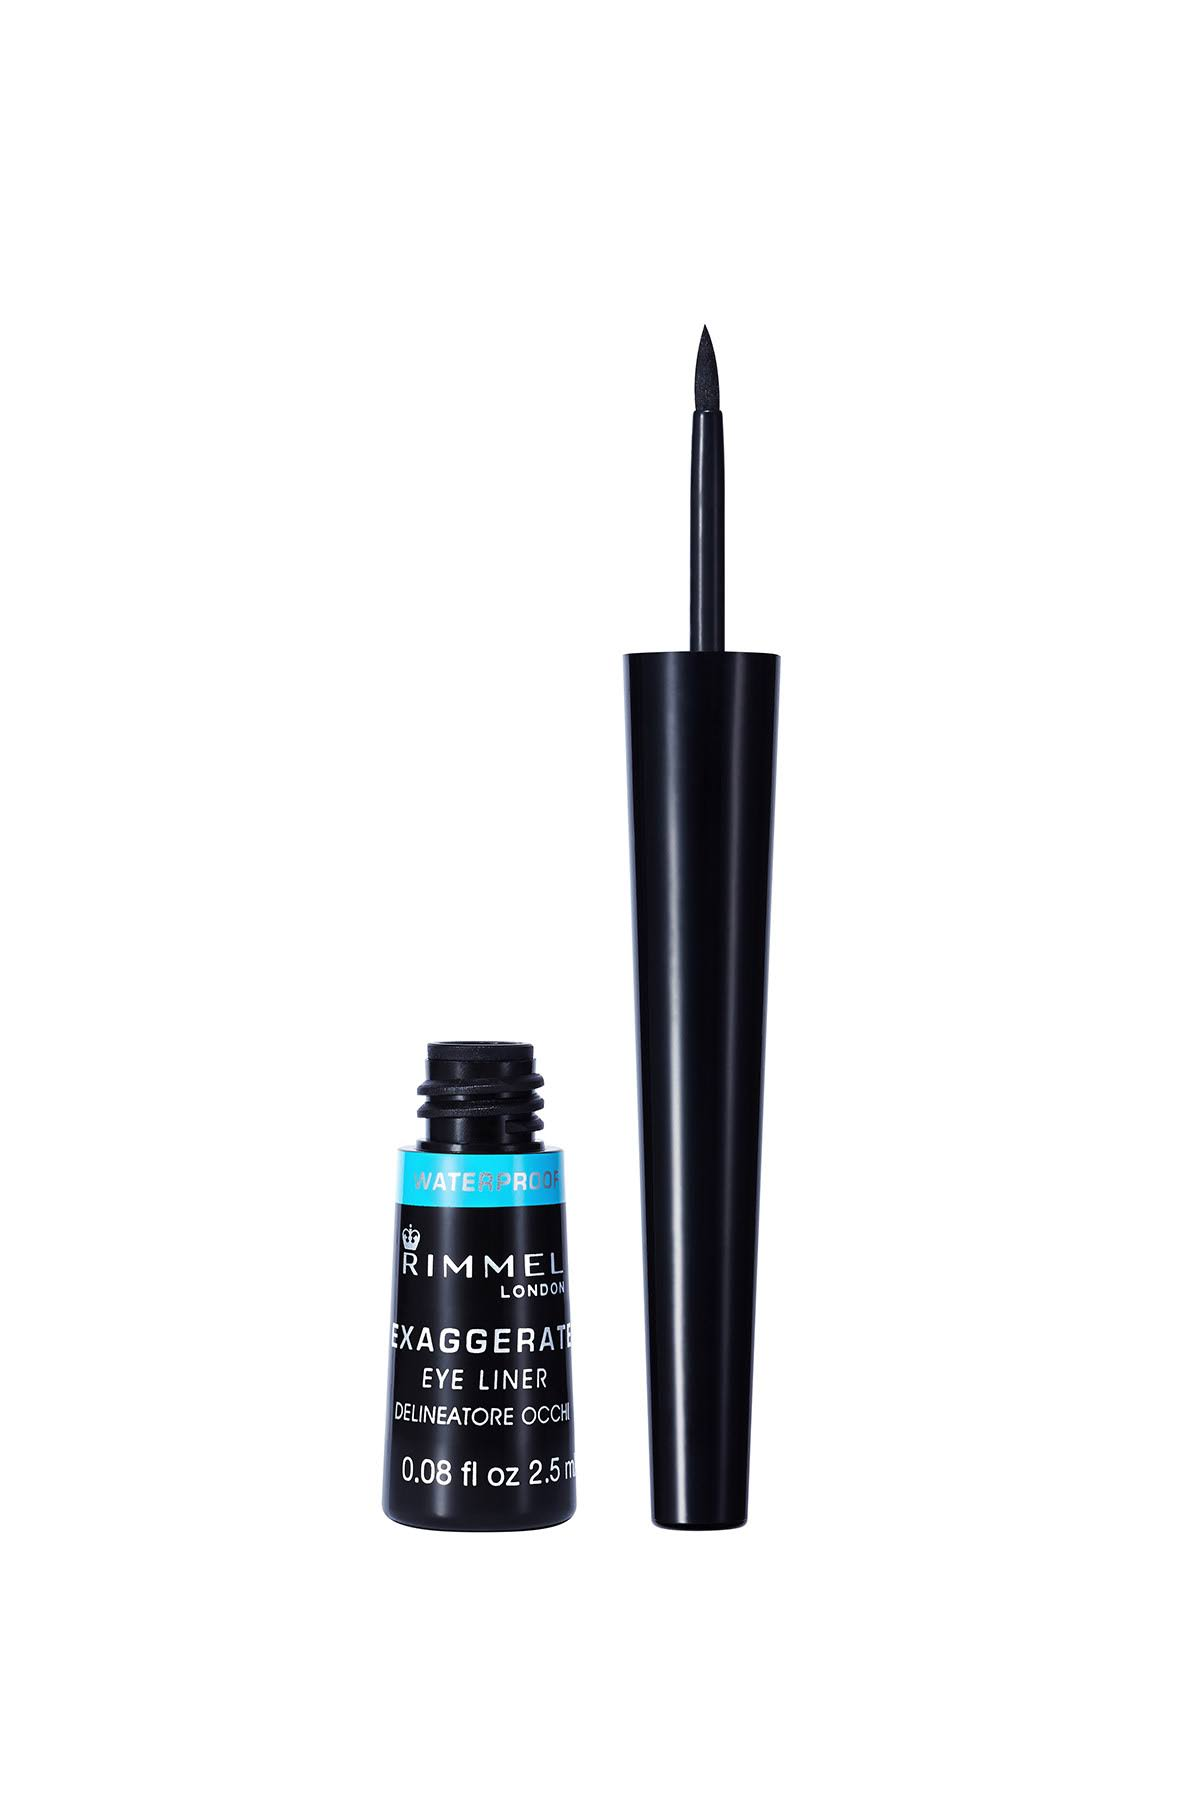 Rimmel London Exaggerate Liquid Eye Liner - 003 Waterproof Black, 2.5ml